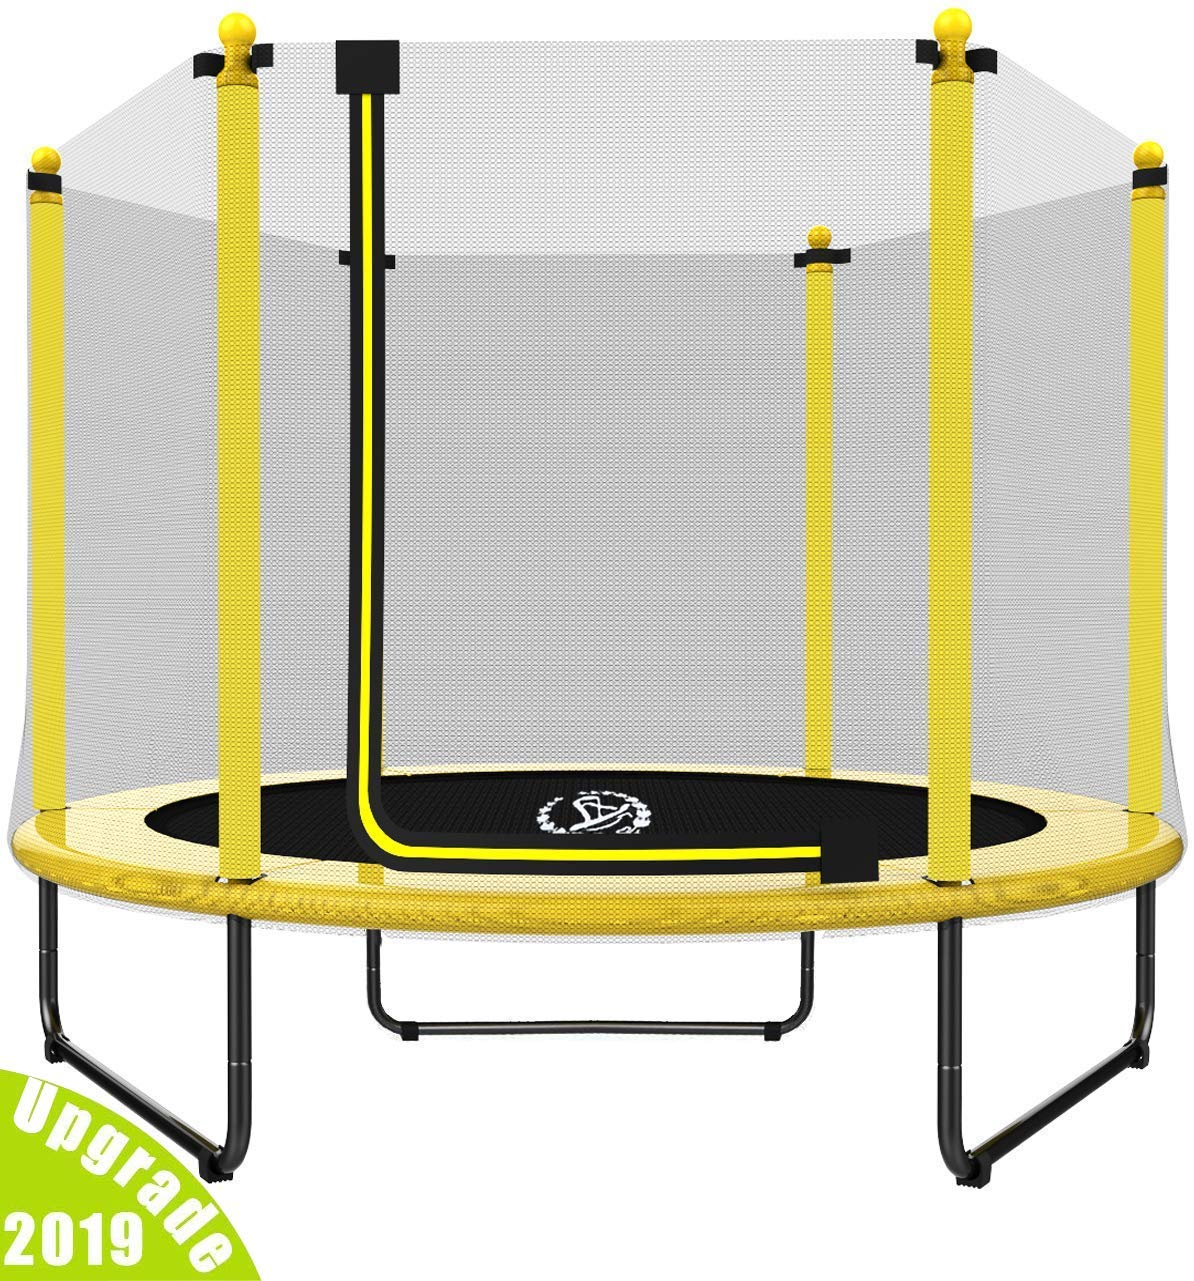 "LANGXUN 60"" Trampoline for Kids"